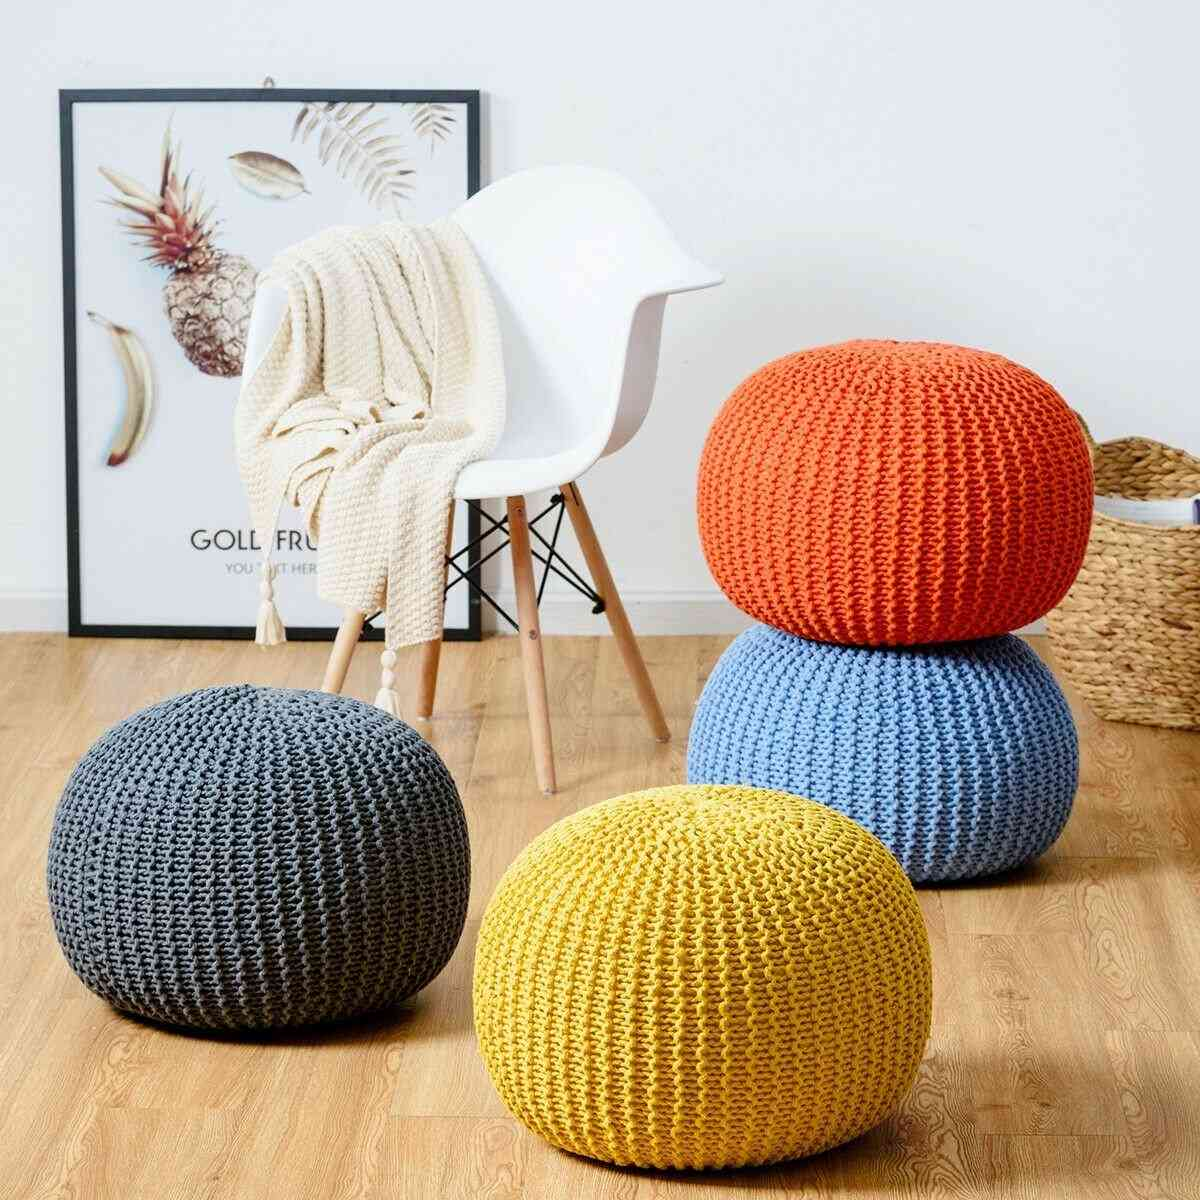 Cotton Exquisite Hand Knitted Pouf Floor Seating